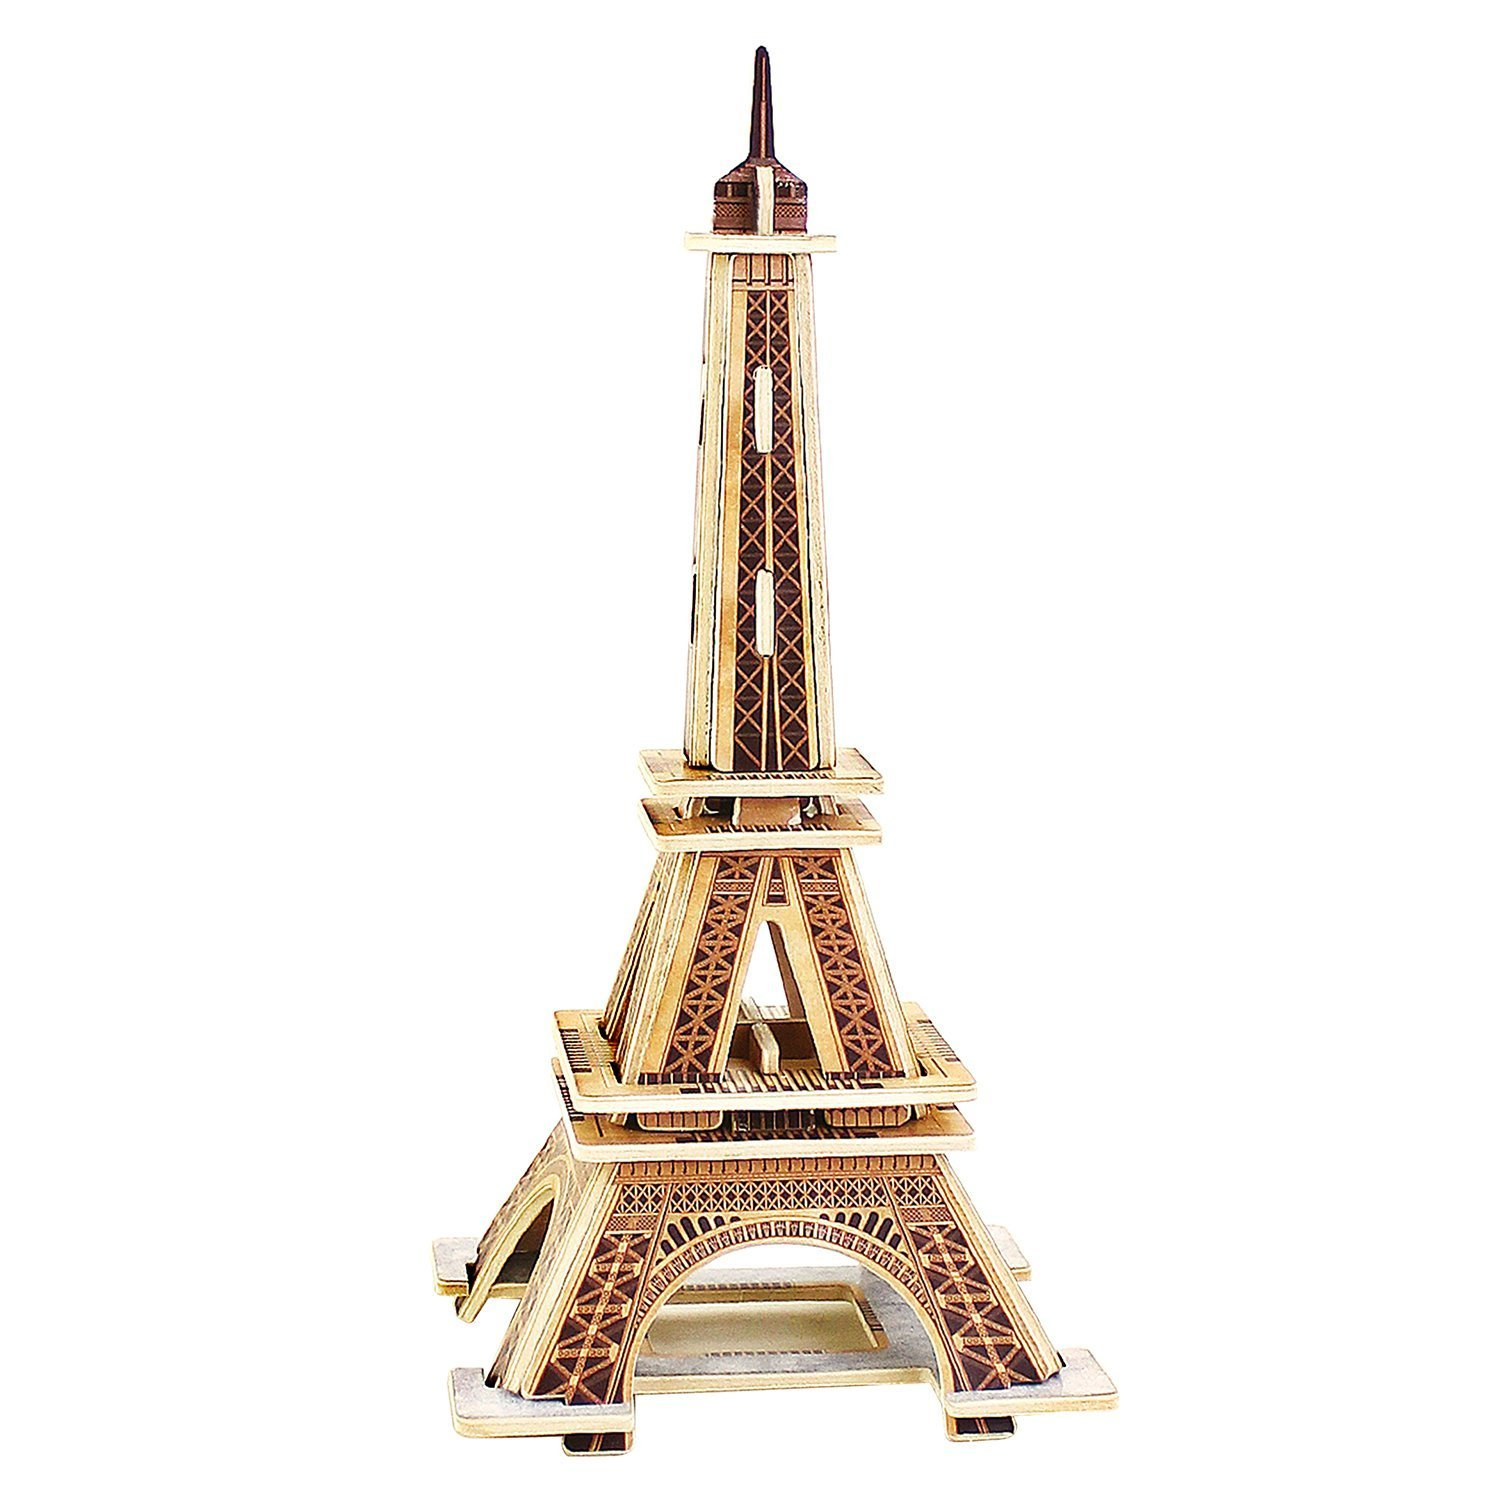 PONTE COLLECTION Eiffel Tower Model Kit 3d Puzzles Architecture Wooden Building Kit Wood Building Models Wooden Model Kits 22-pcs